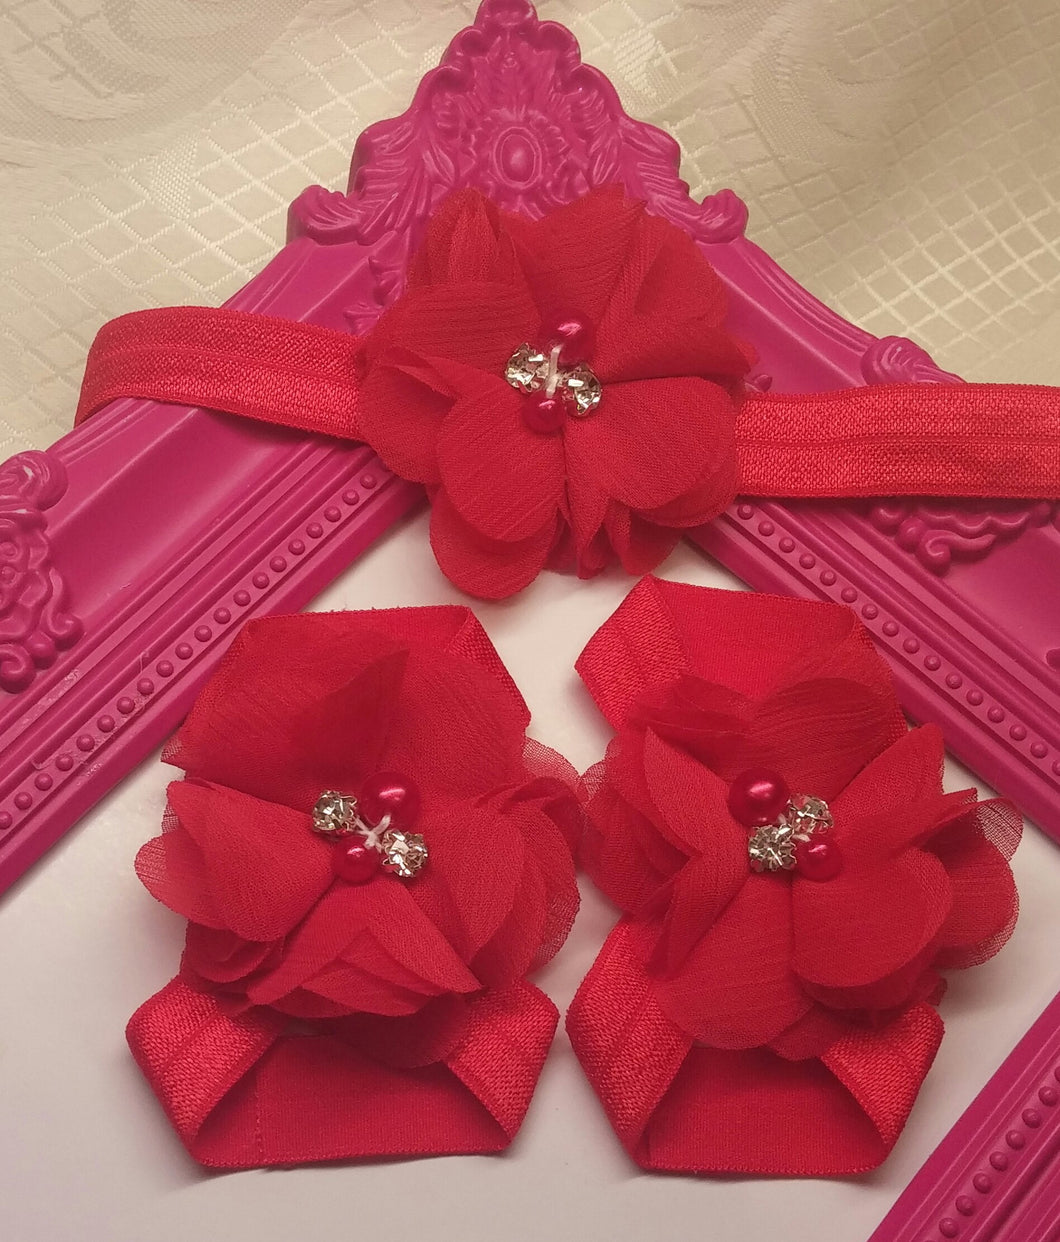 Red Chiffon Headband and Barefoot Sandal Sets - Princesses Design